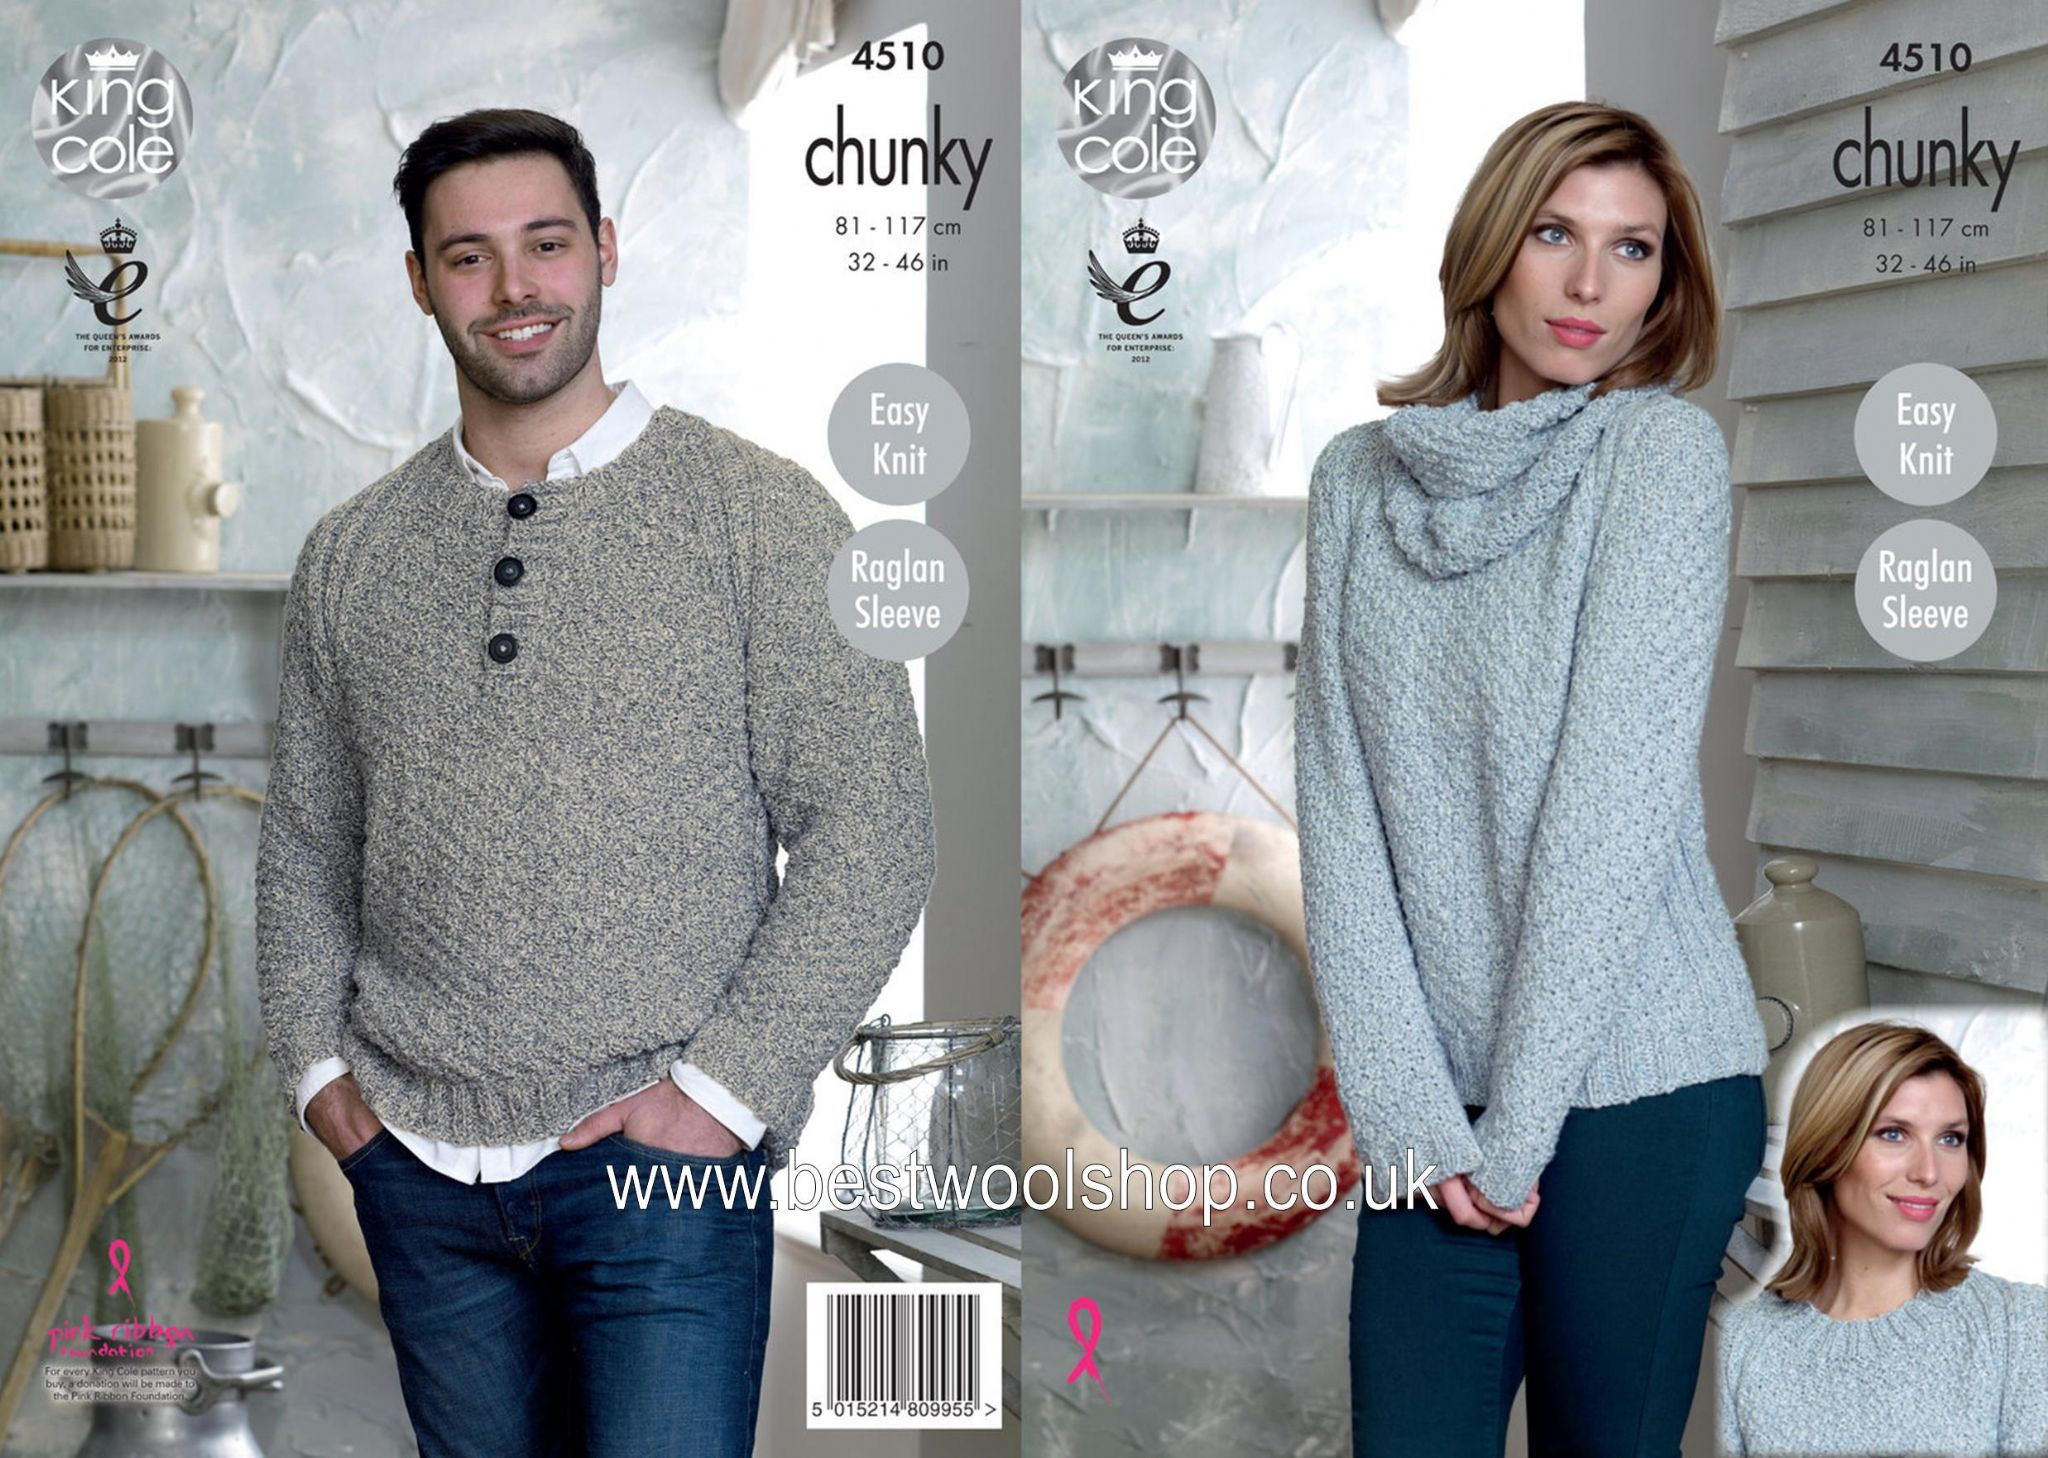 7c82a4ba6 4510-king-cole-authentic-chunky-mens-sweater-ladies-sweater-cowl-knitting- pattern-97915-p.jpg